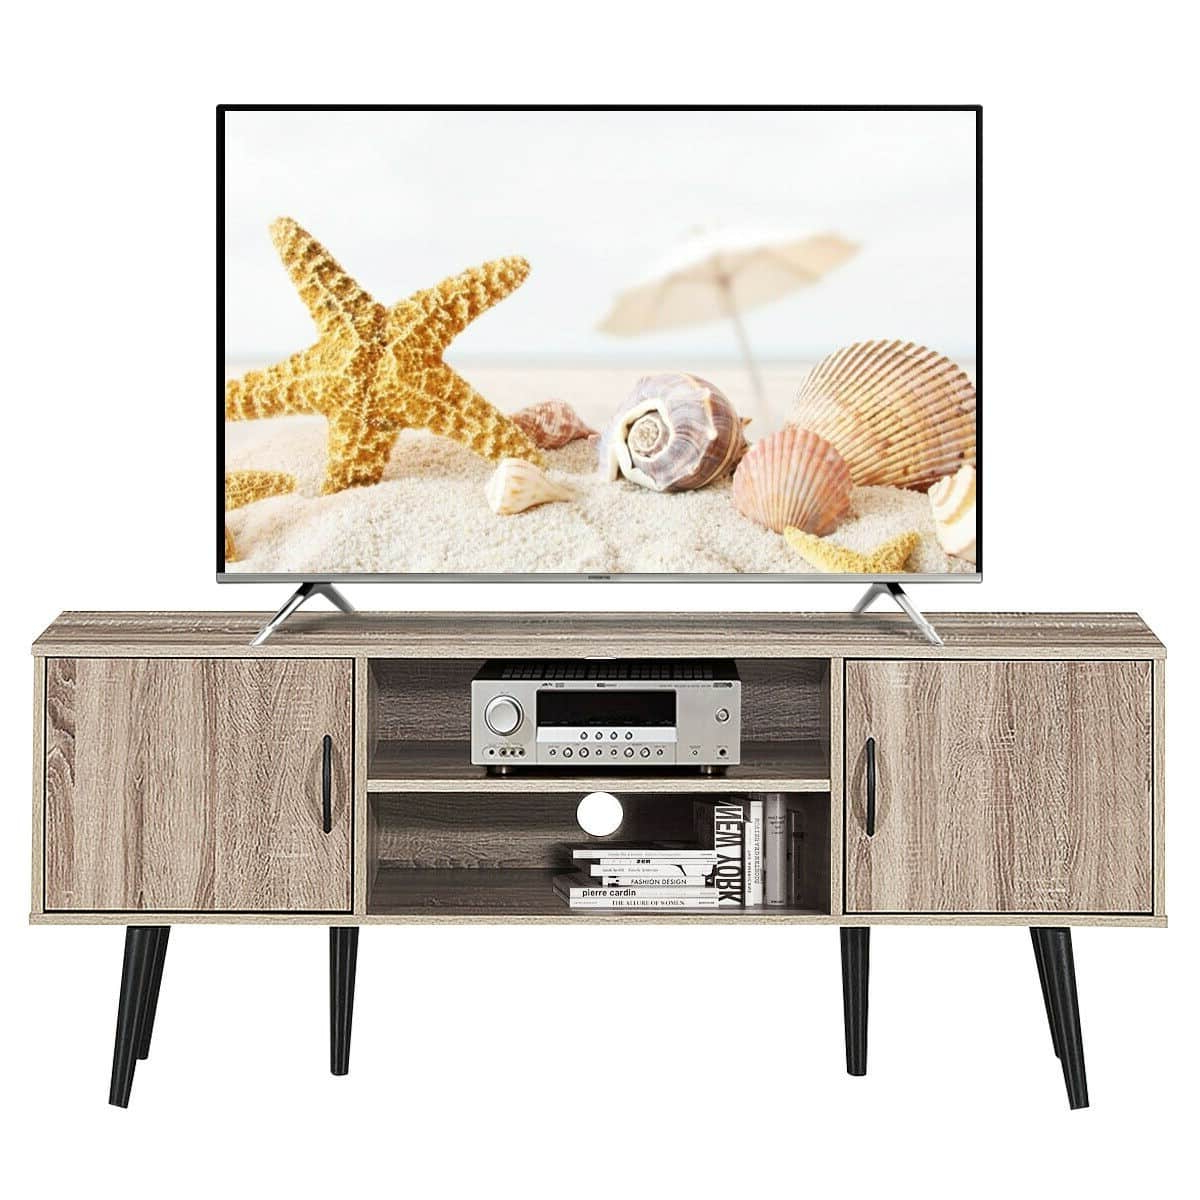 Tv Stand Cabinet Shelf Storage – Molleos Intended For Horizontal Or Vertical Storage Shelf Tv Stands (View 10 of 20)